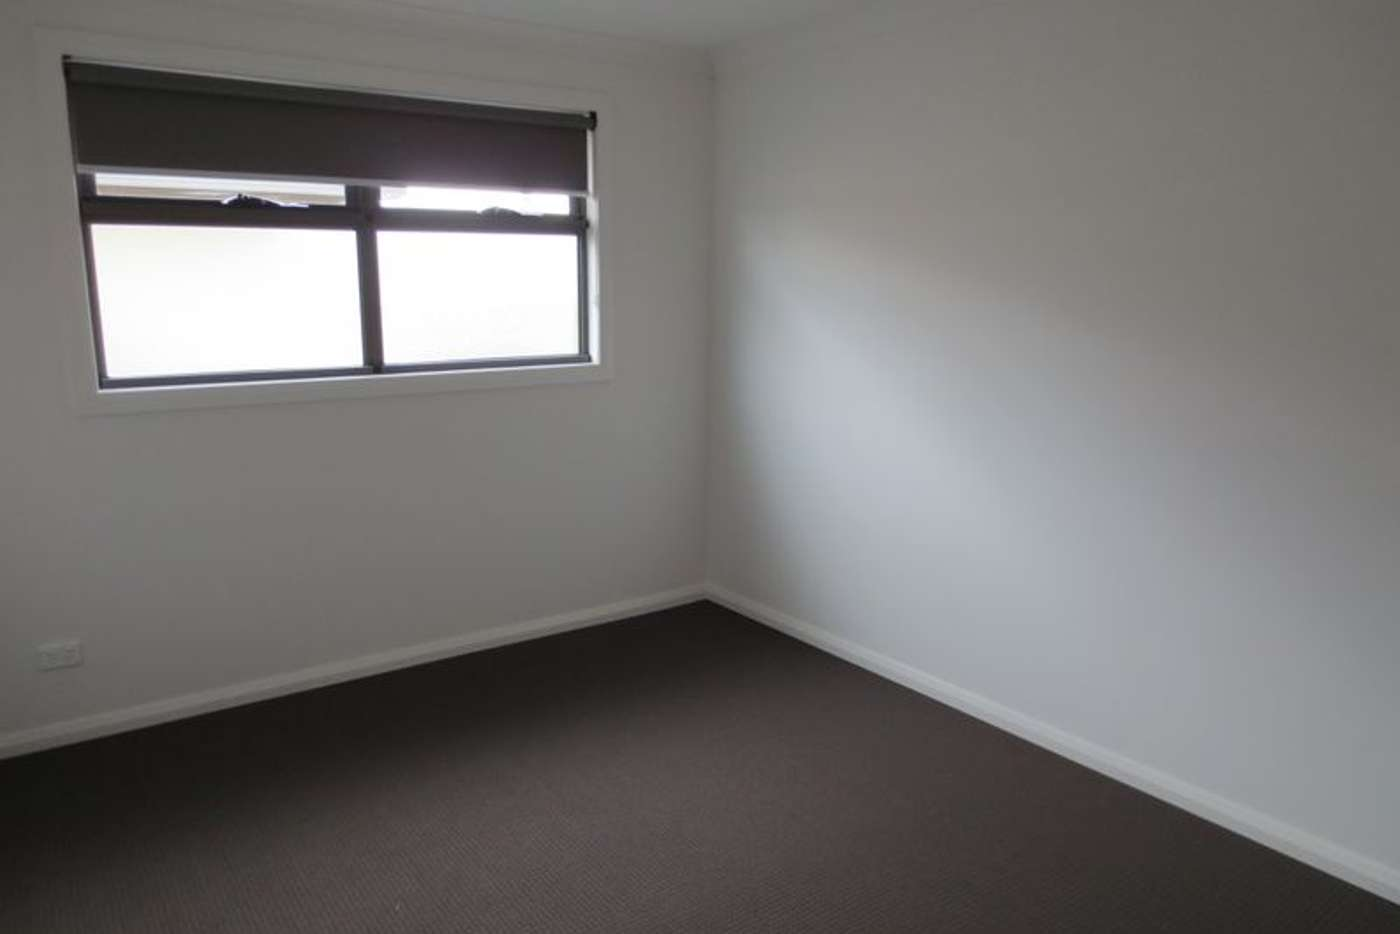 Sixth view of Homely townhouse listing, 1/85 View Street, Glenroy VIC 3046